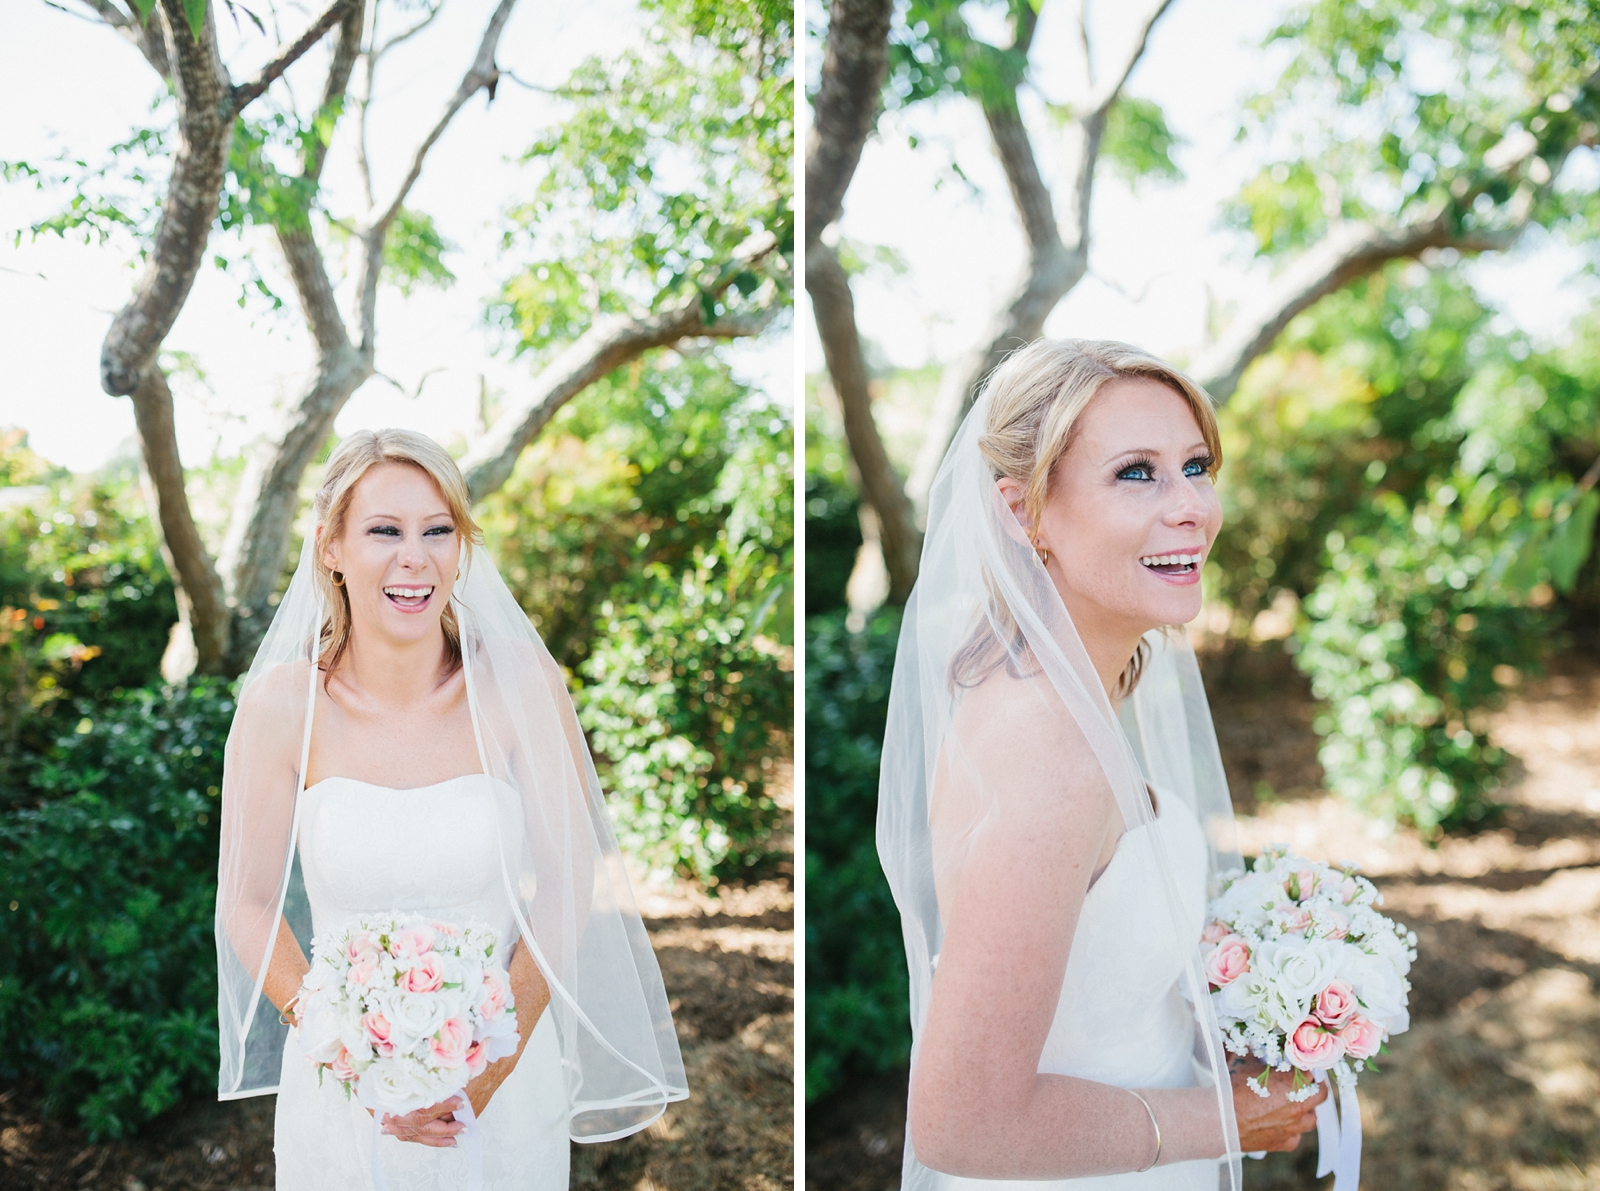 ConnorLaura_Auckland Wedding Photographer_Patty Lagera_0072.jpg